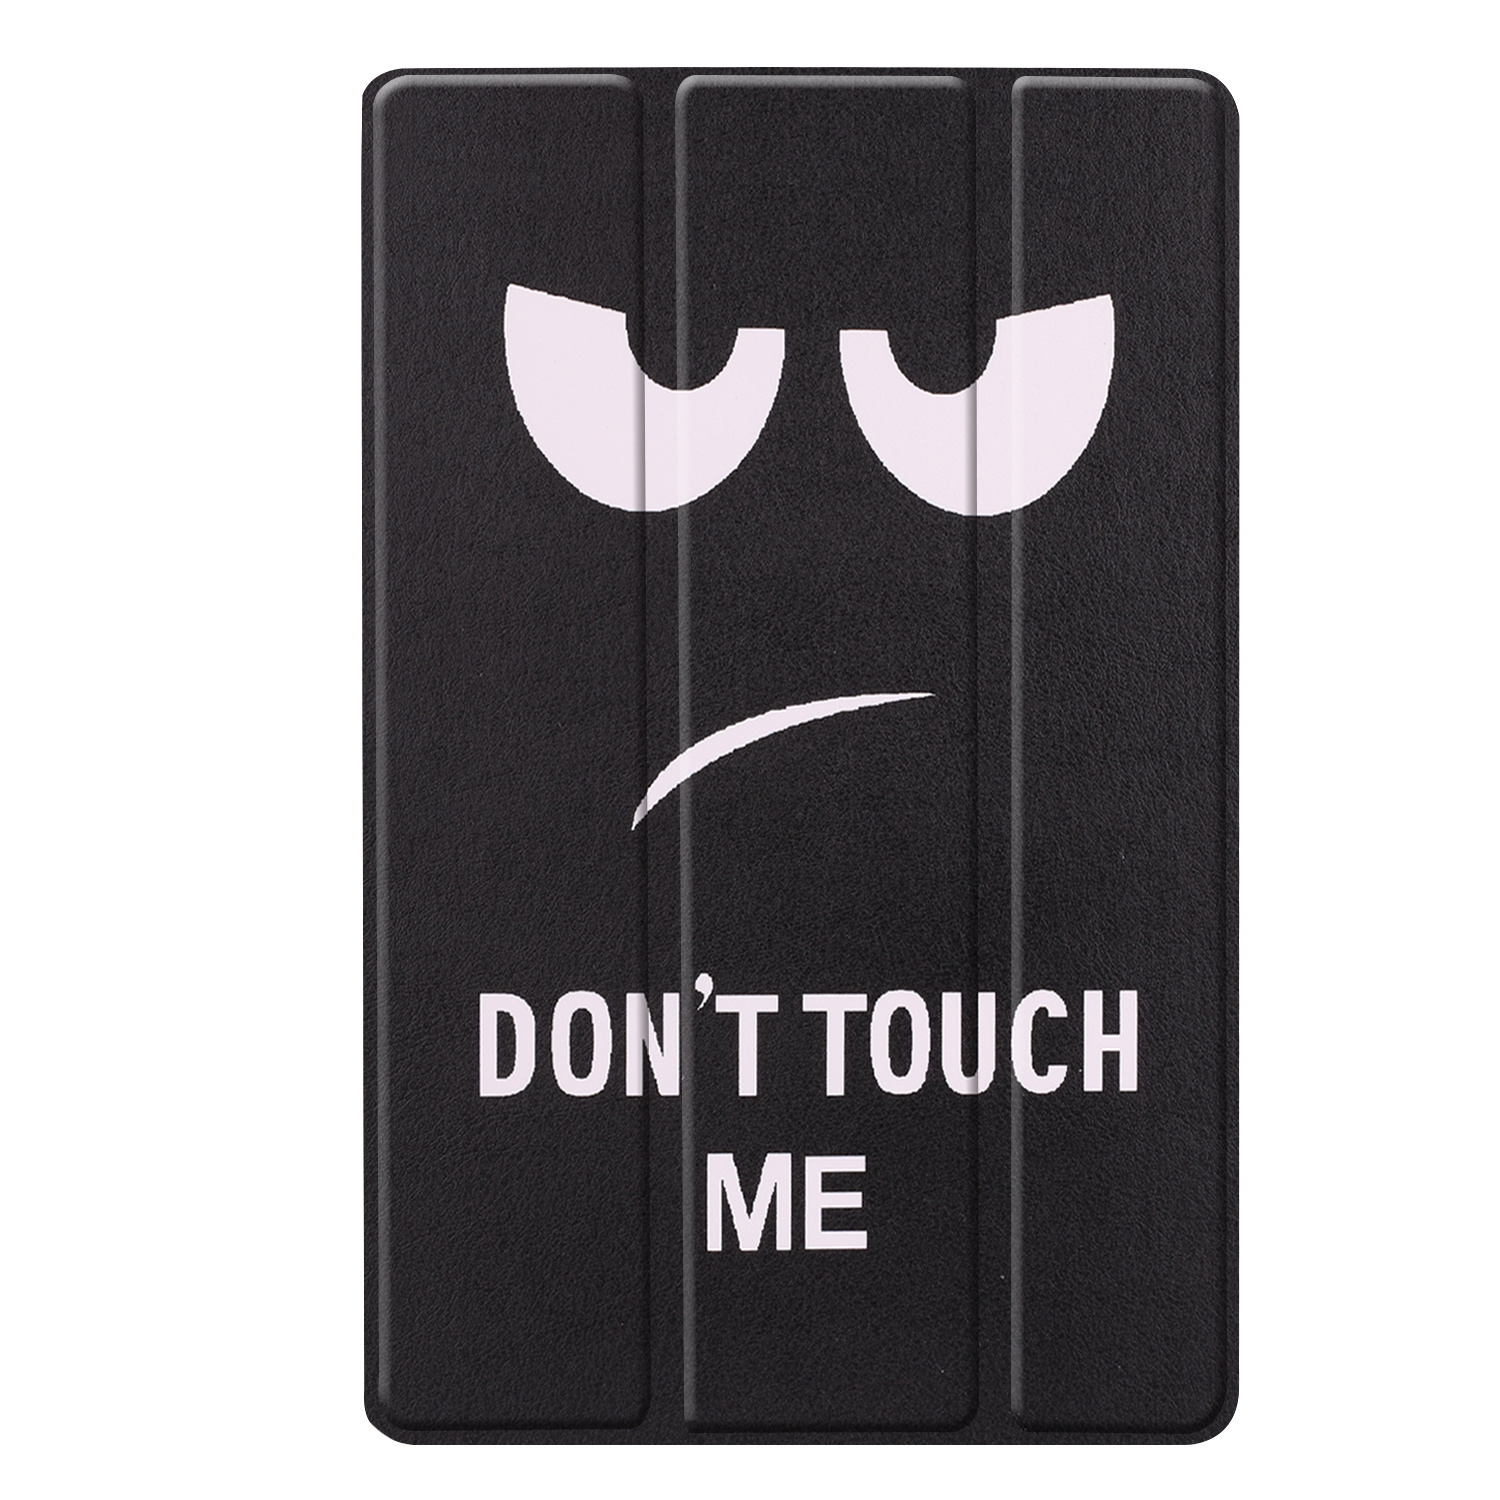 3-Vouw sleepcover hoes Don't Touch voor de Samsung Galaxy Tab S5e 10.5 inch